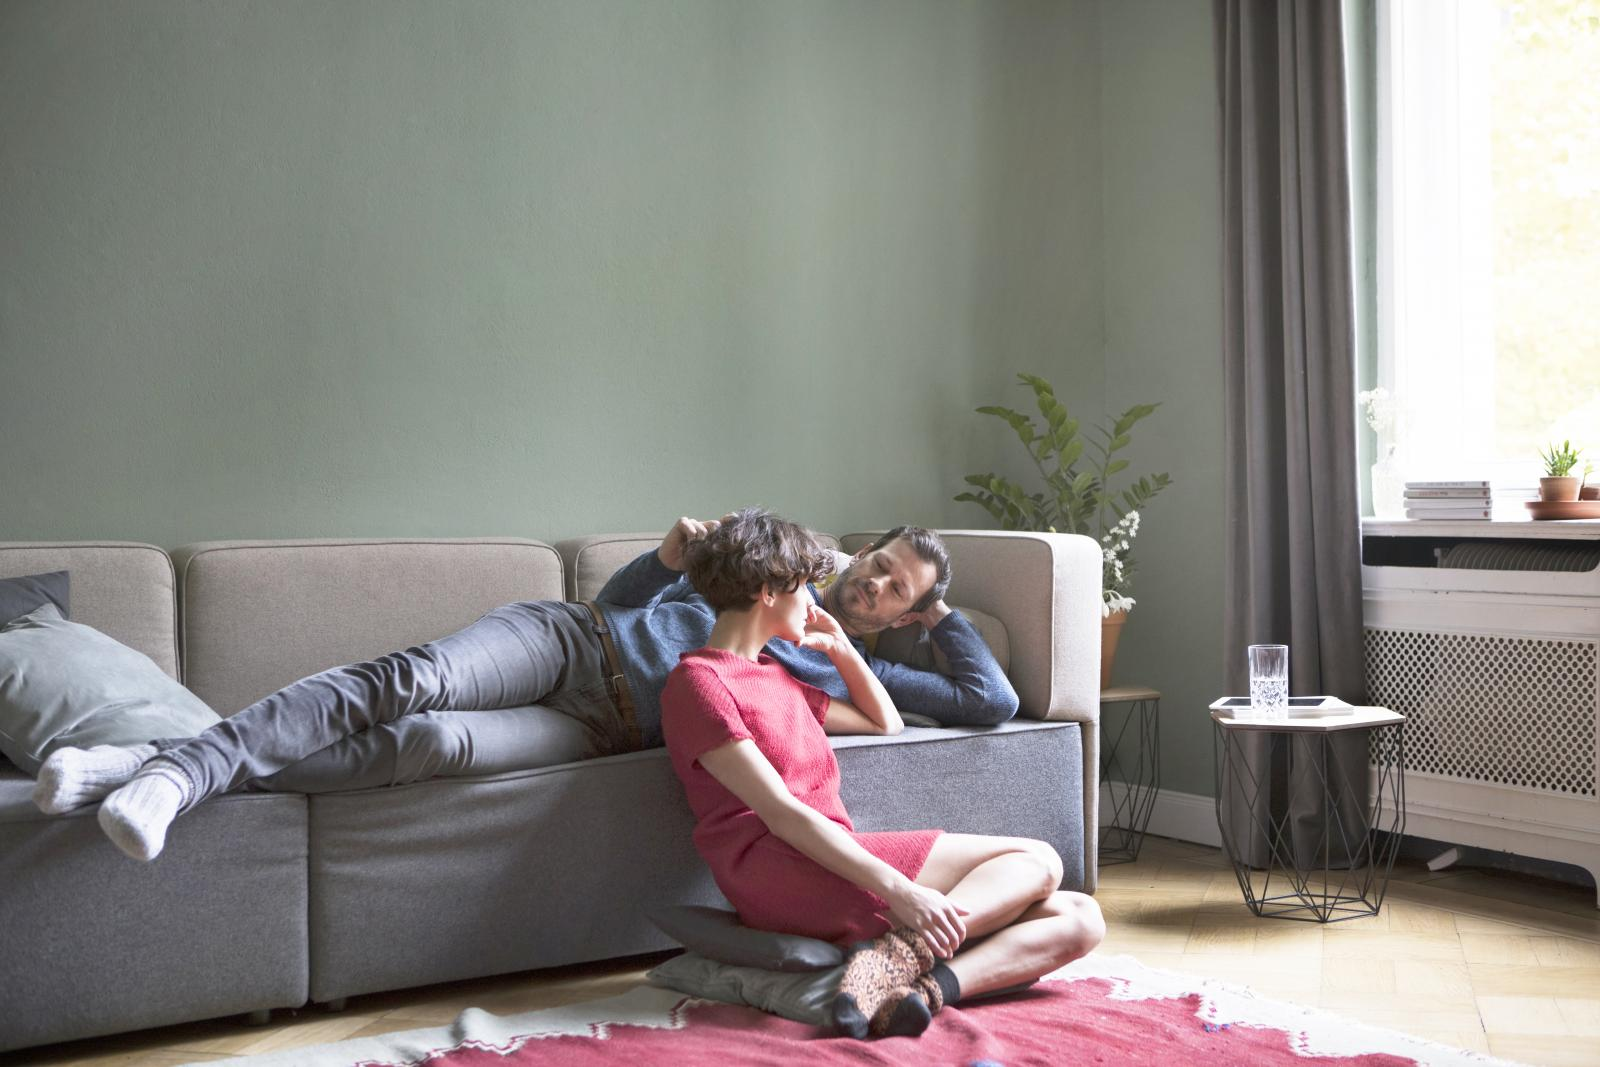 Couple relaxing together in the living room